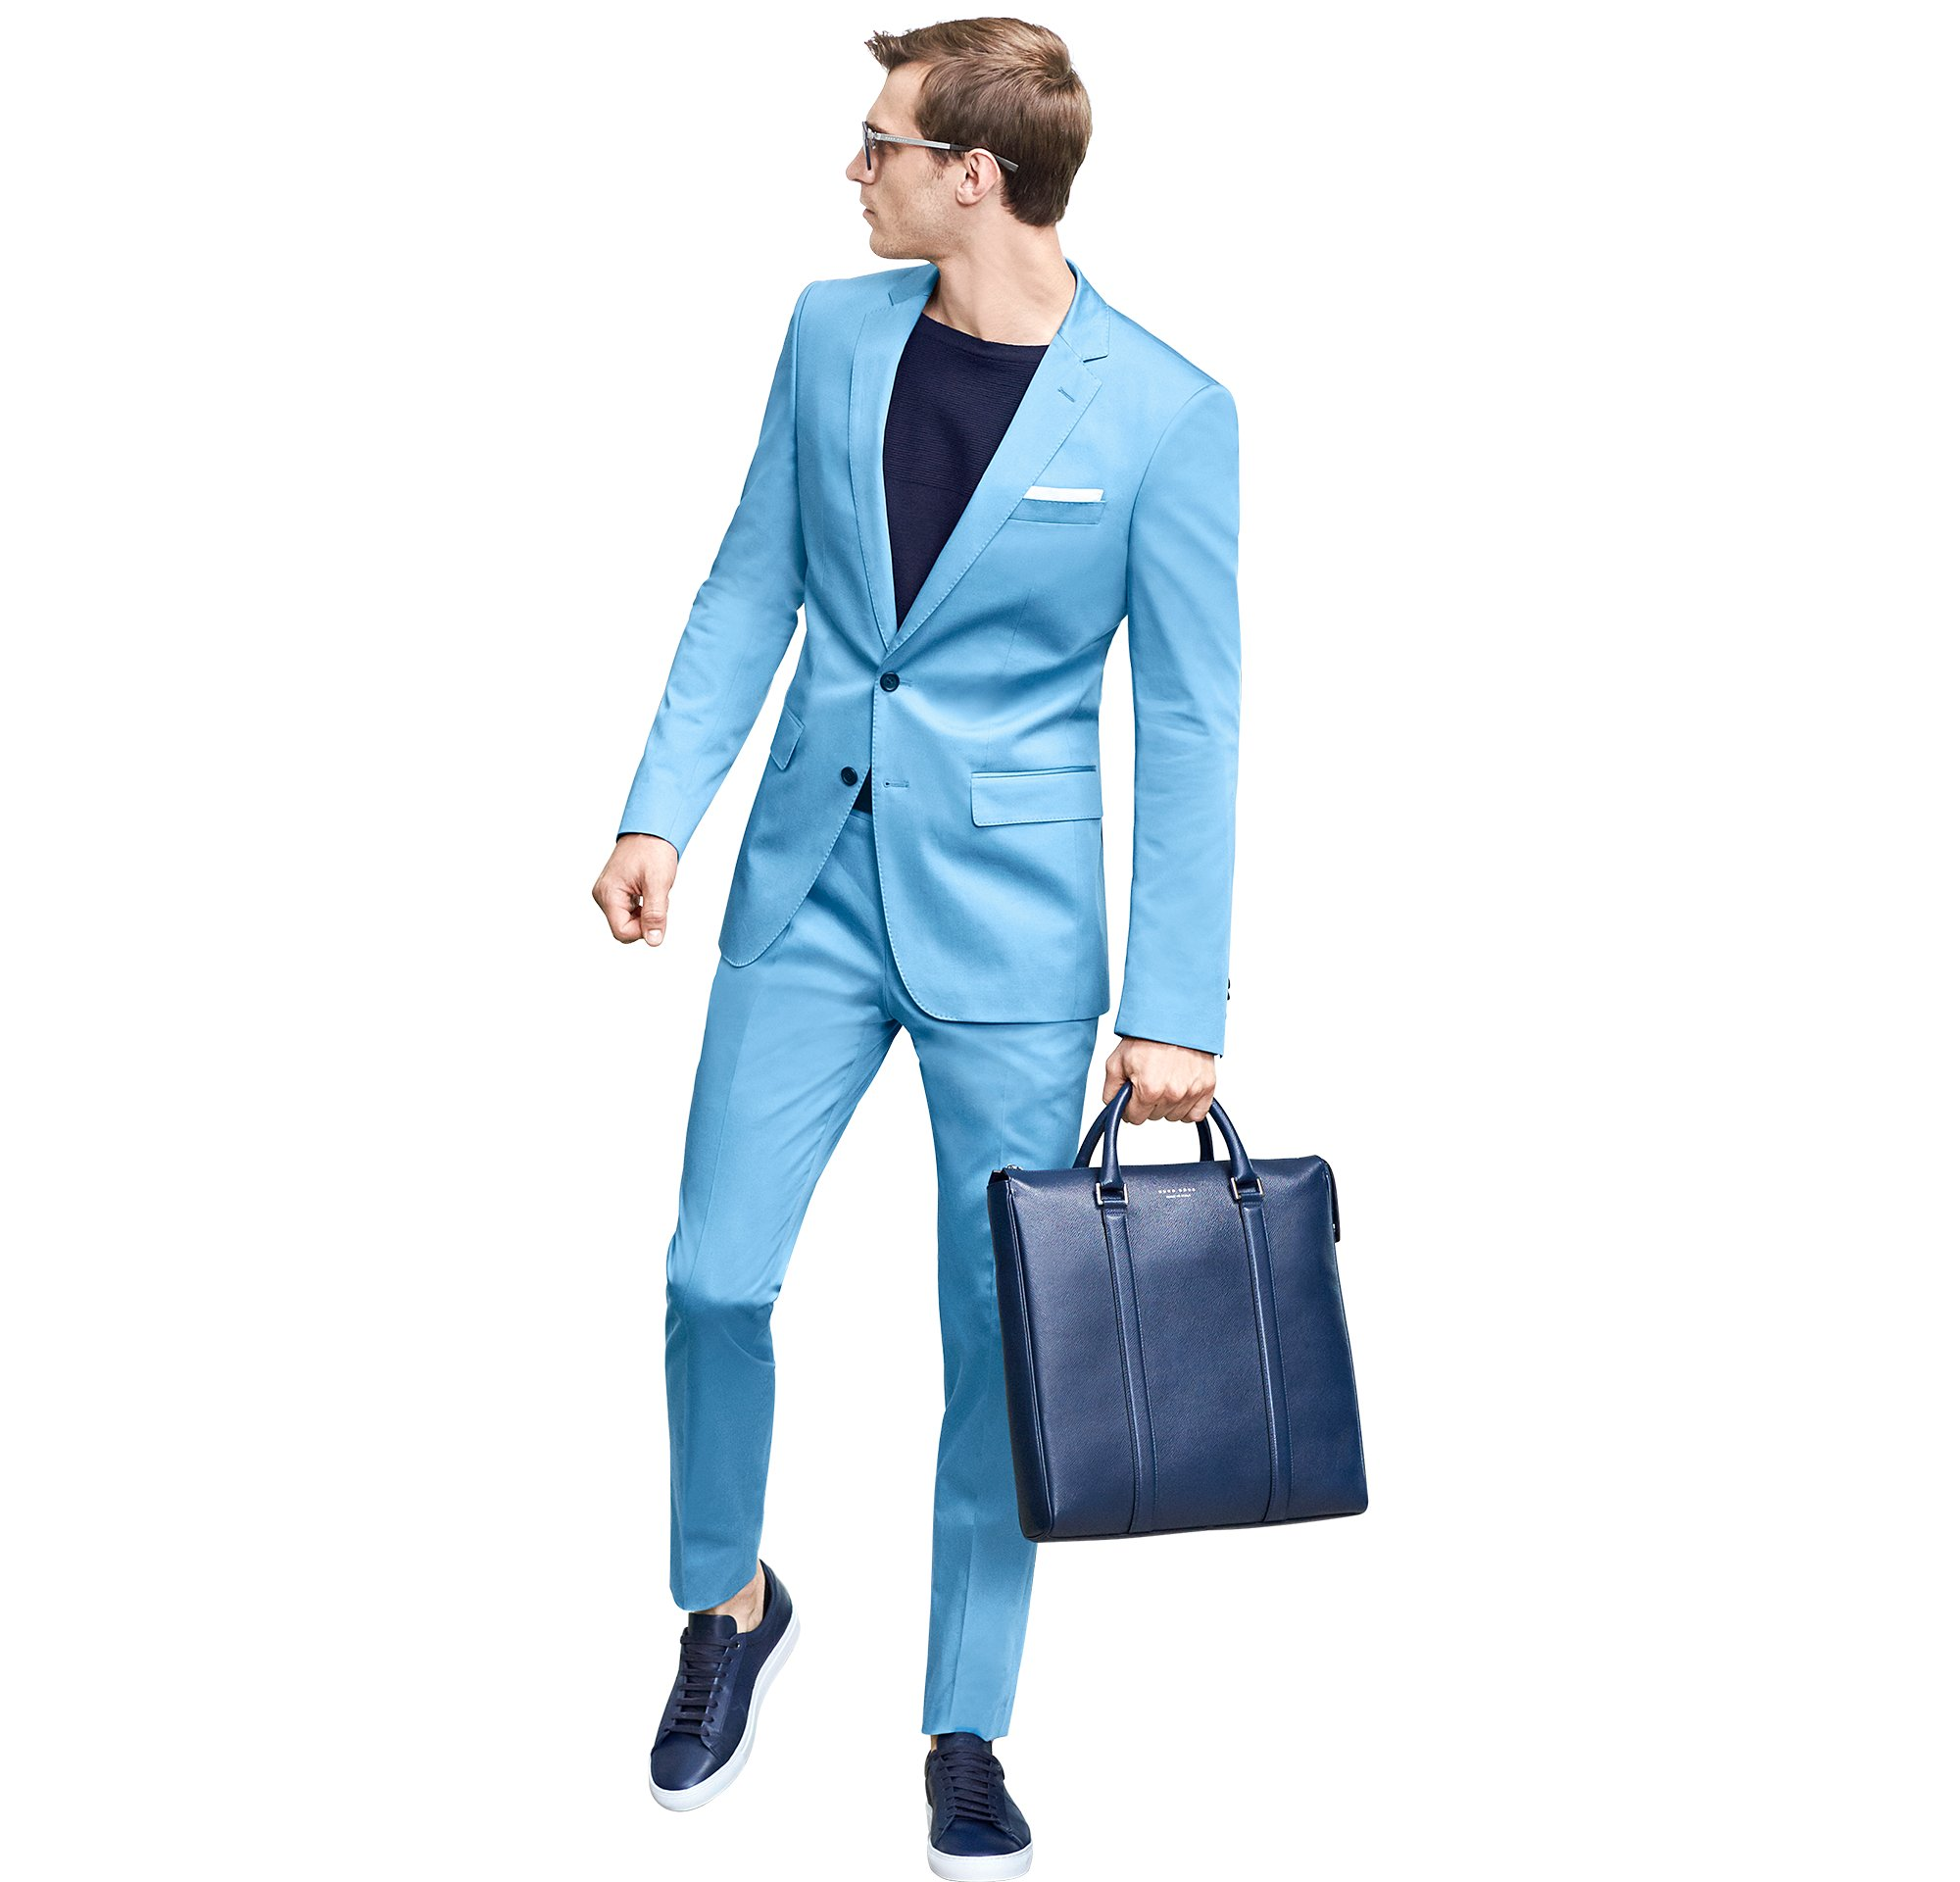 Blue suit over blue knitwear and shoes by BOSS